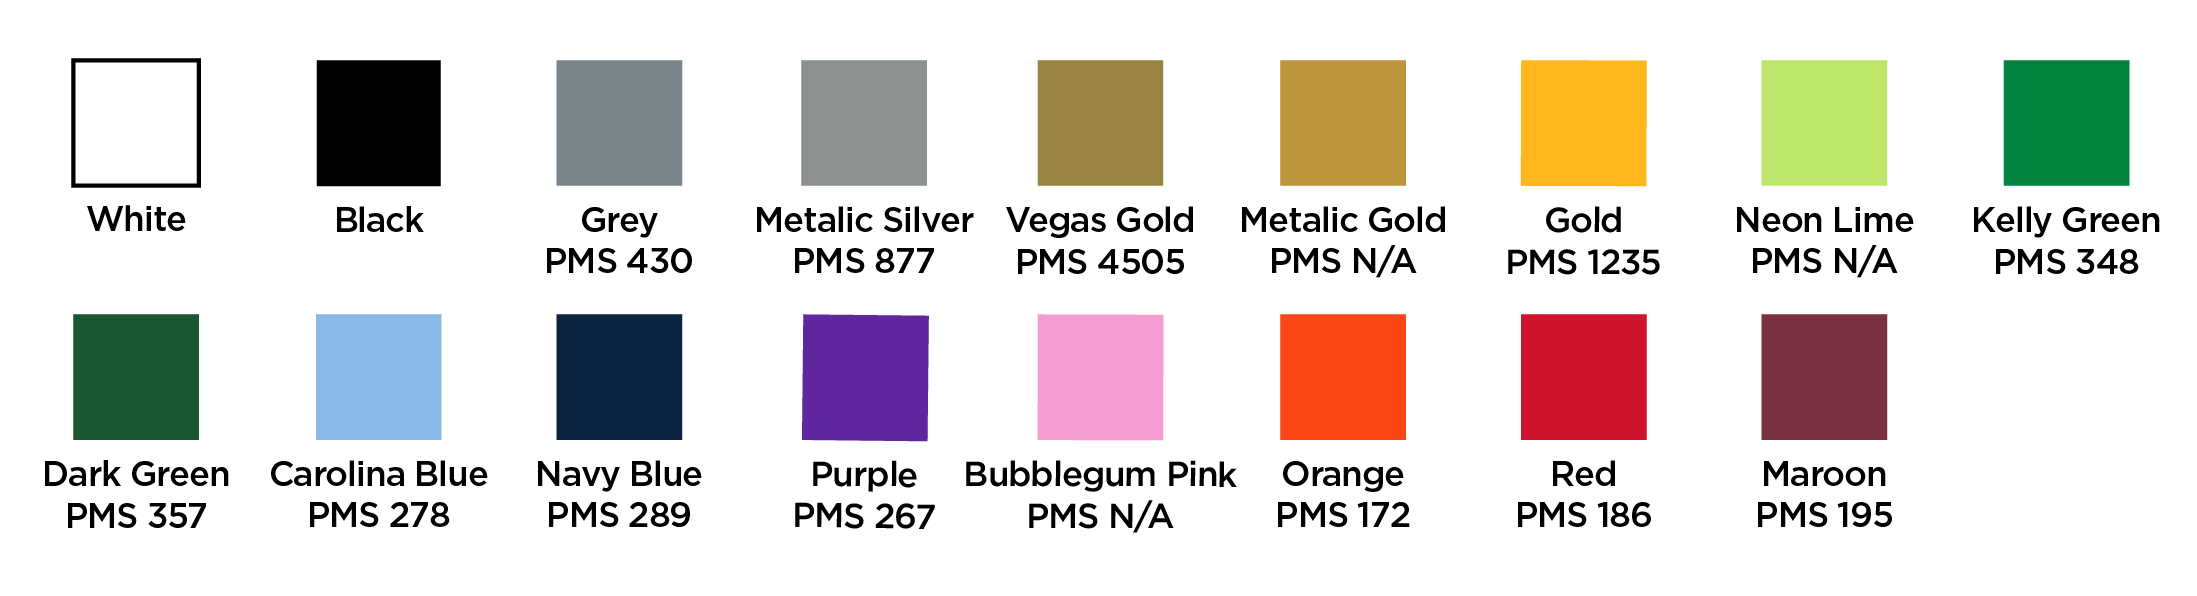 Color Swatch - Master File - 6.22.19-17.png